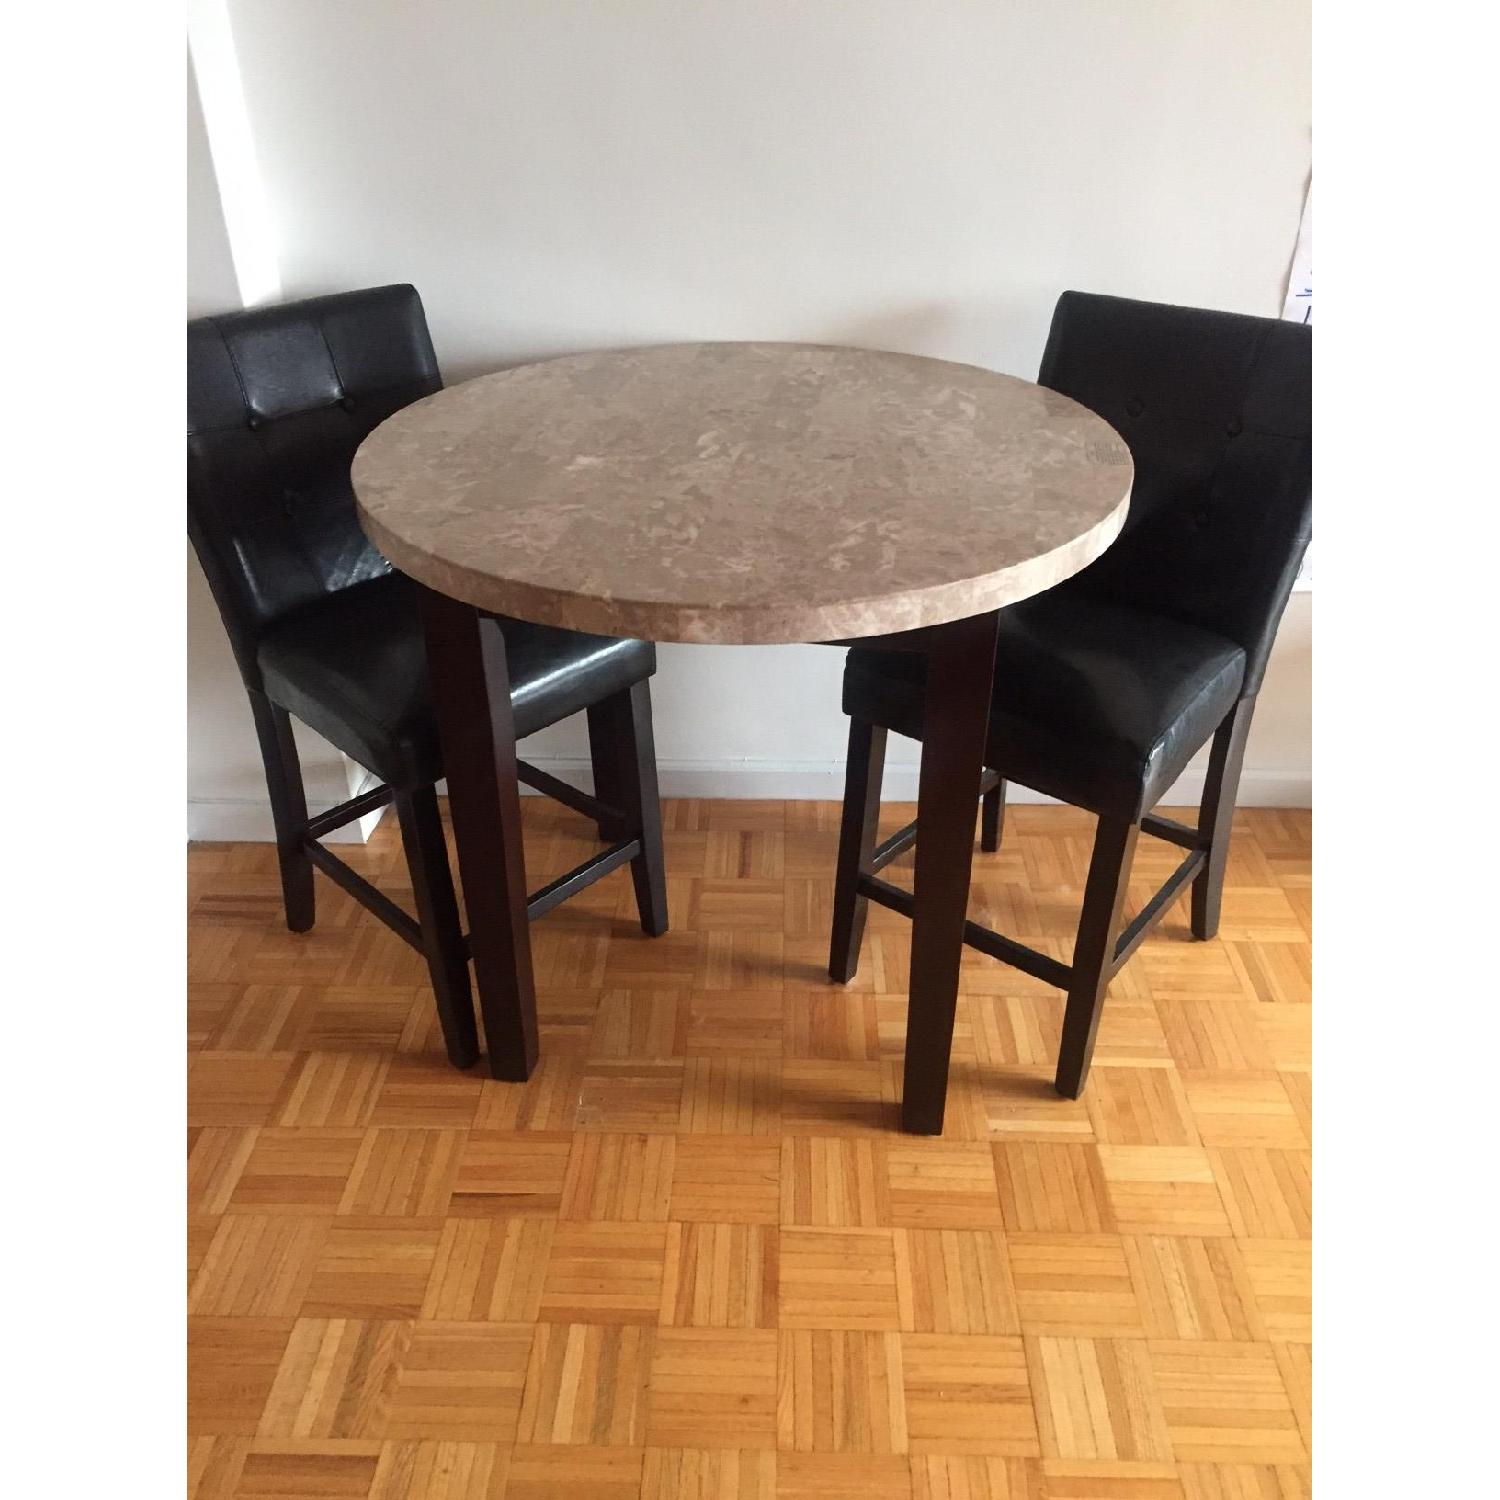 Harlem Furniture Inc Marble Table w/ 2 Black Leather Chairs-0